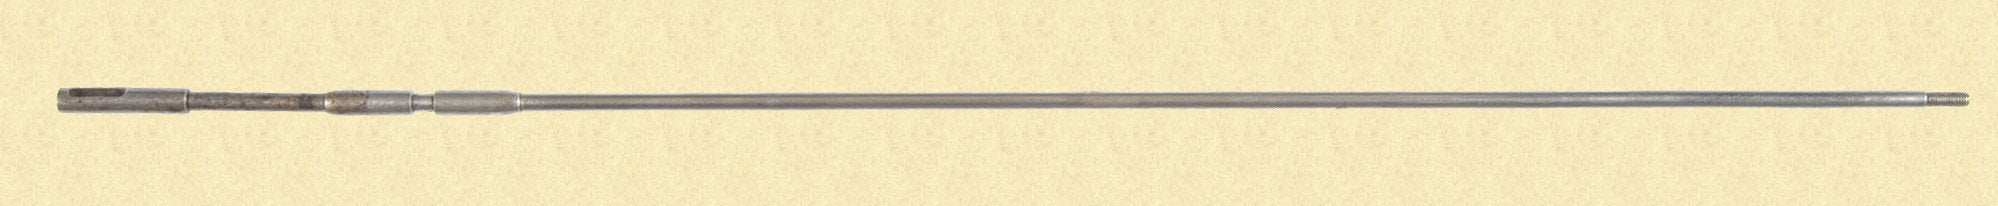 JAPANESE TYPE 38 CARBINE CLEANING ROD